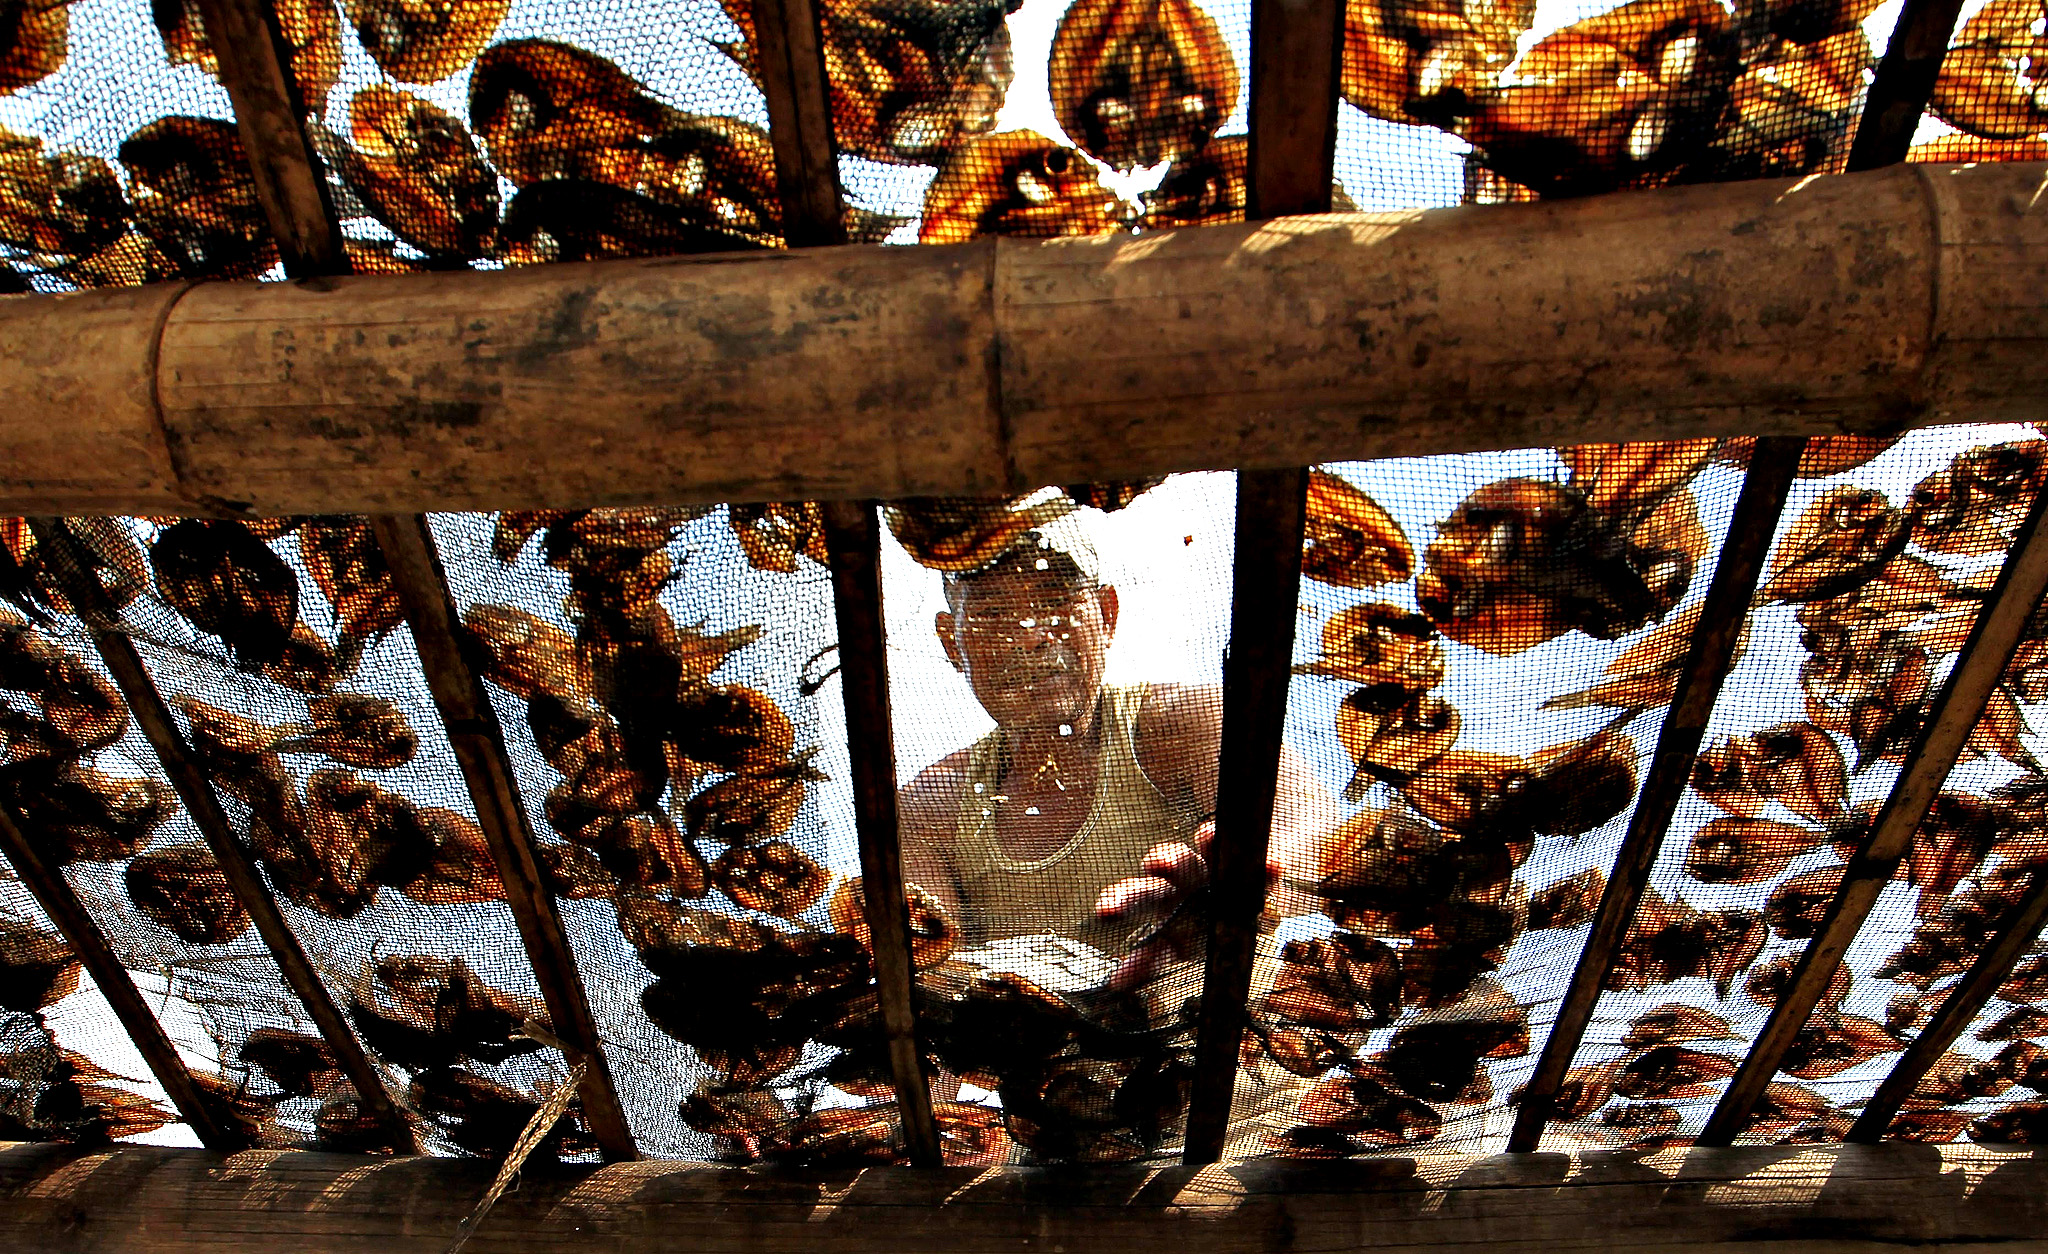 Filipino fisherman Estelito Marijuan, 58, arranges dried fish at a fishing village during the celebration of World Fisheries day in Paranaque city, south of Manila, Philippines, 21 November 2014. World Fisheries day is celebrated every year on 21 November to highlight the importance of maintaining the world's fisheries.